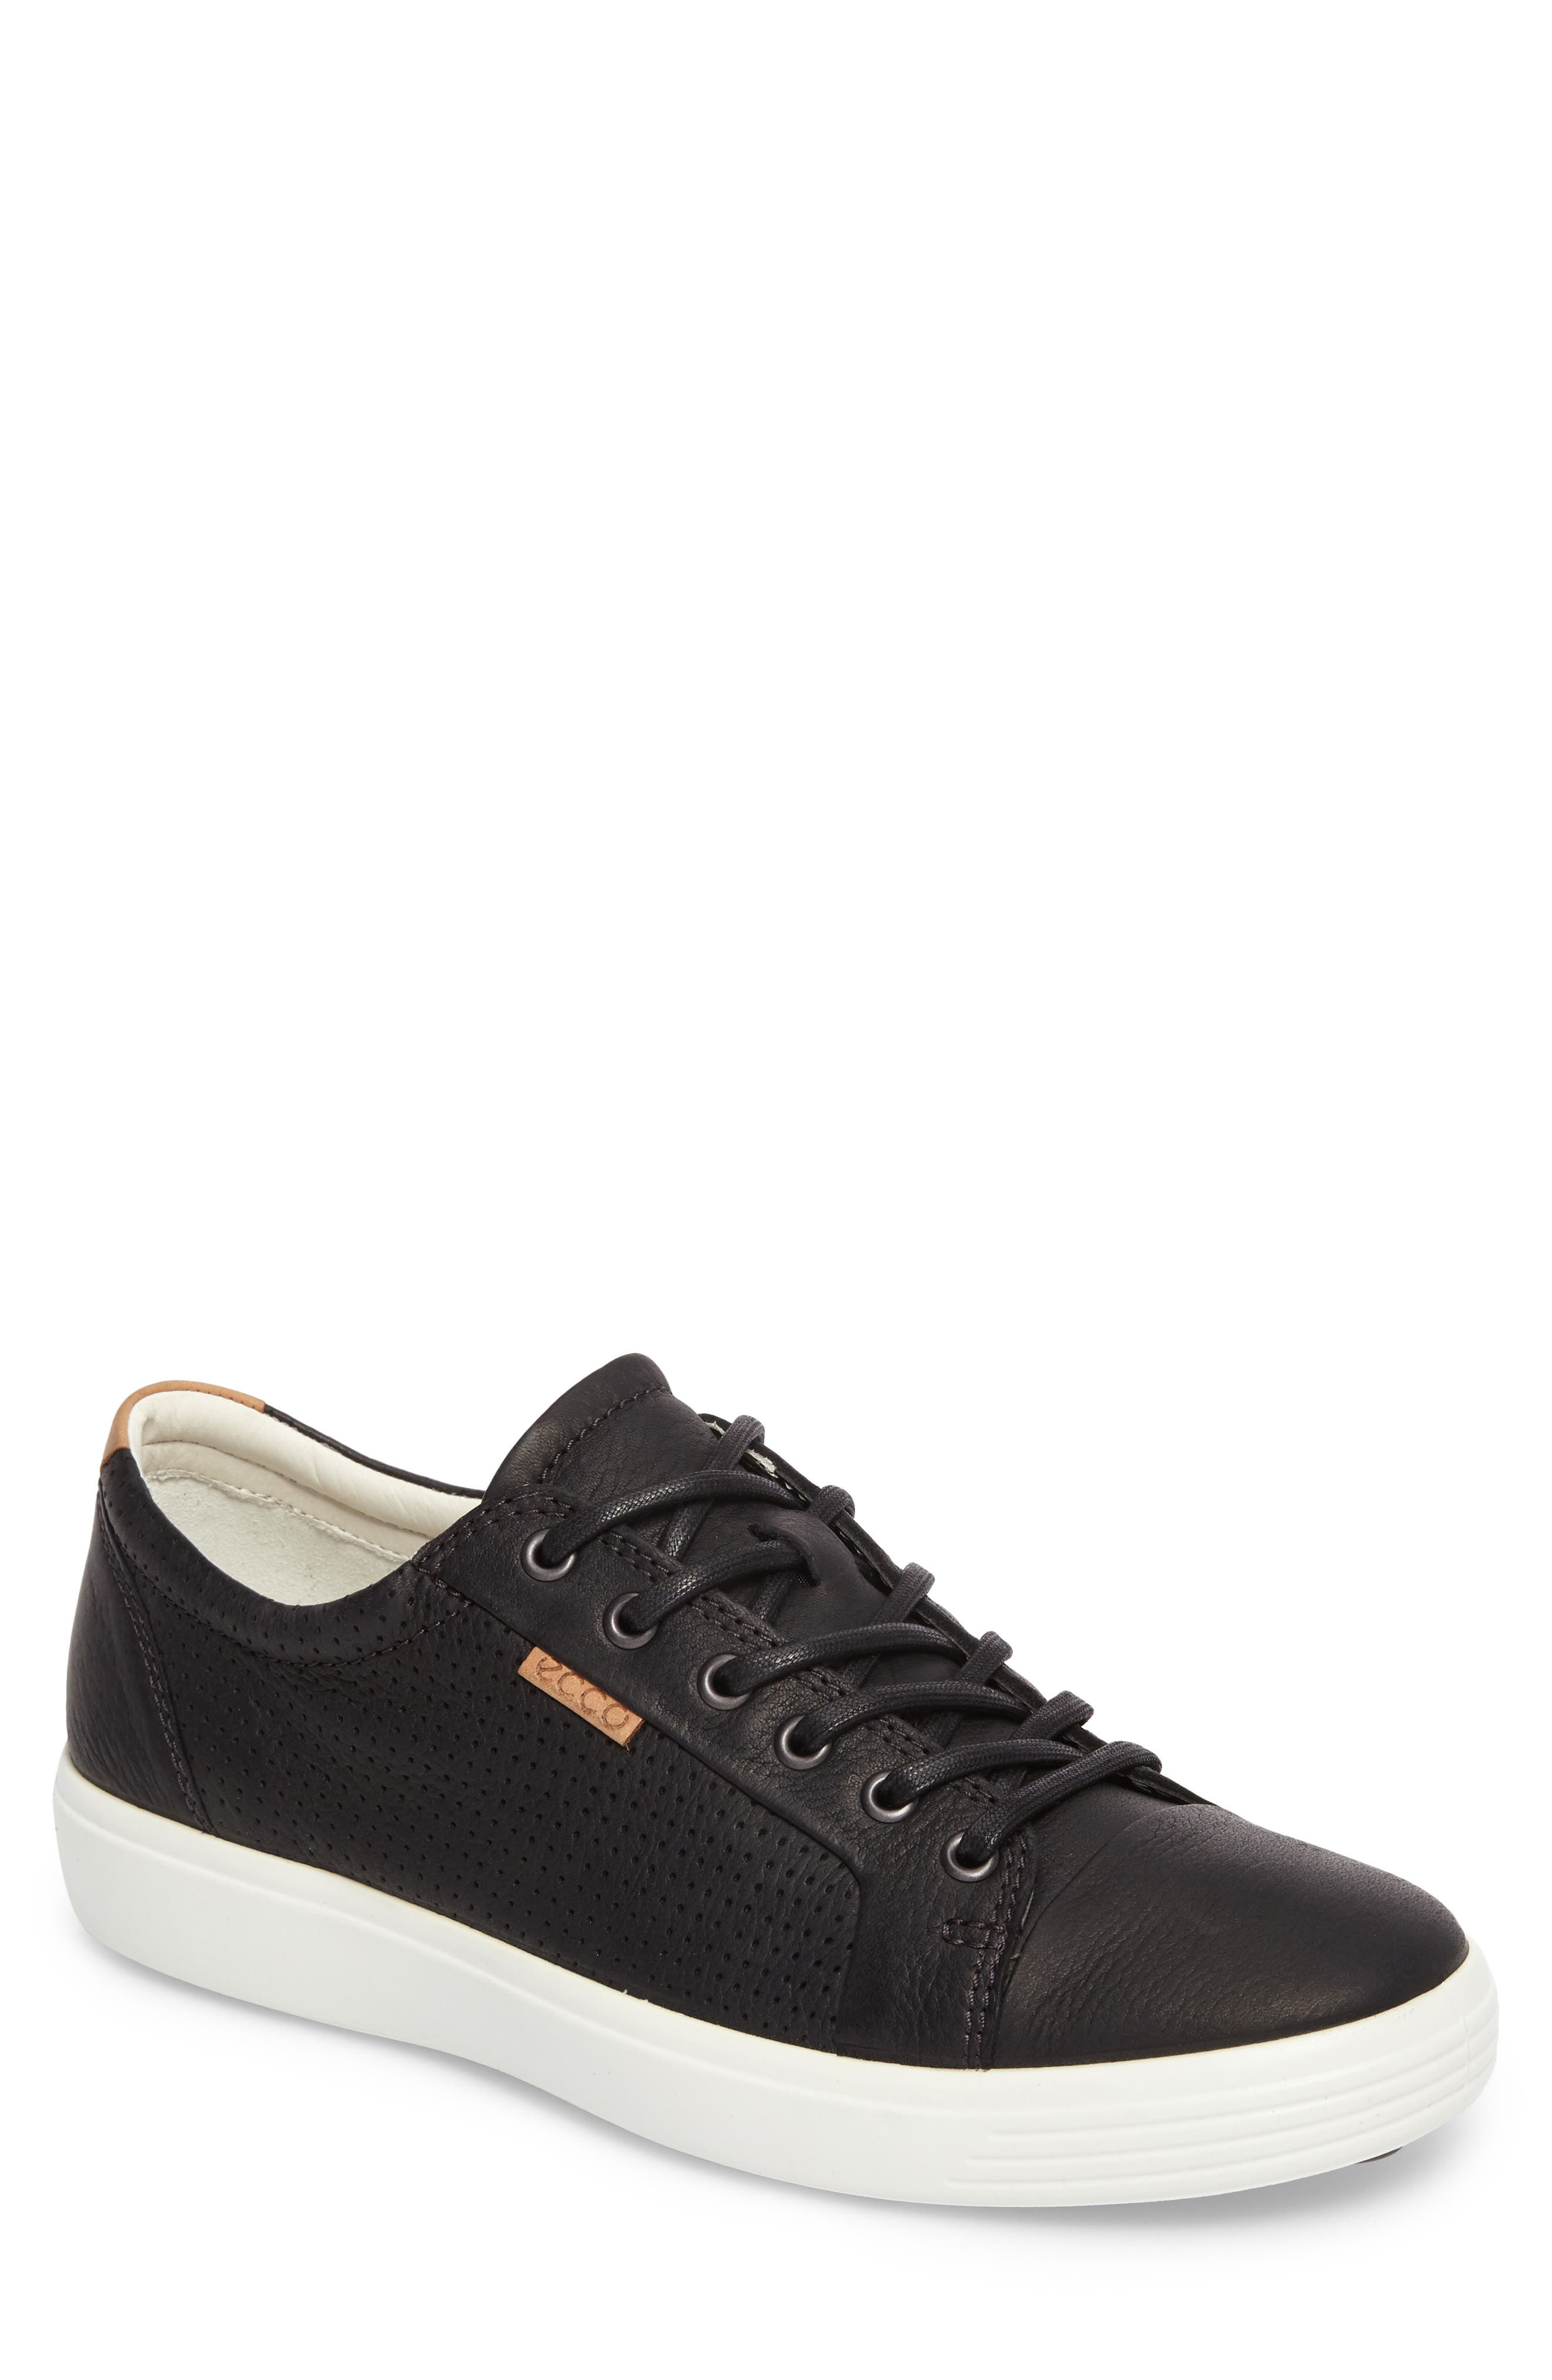 'Soft 7' Sneaker,                         Main,                         color, BLACK LEATHER